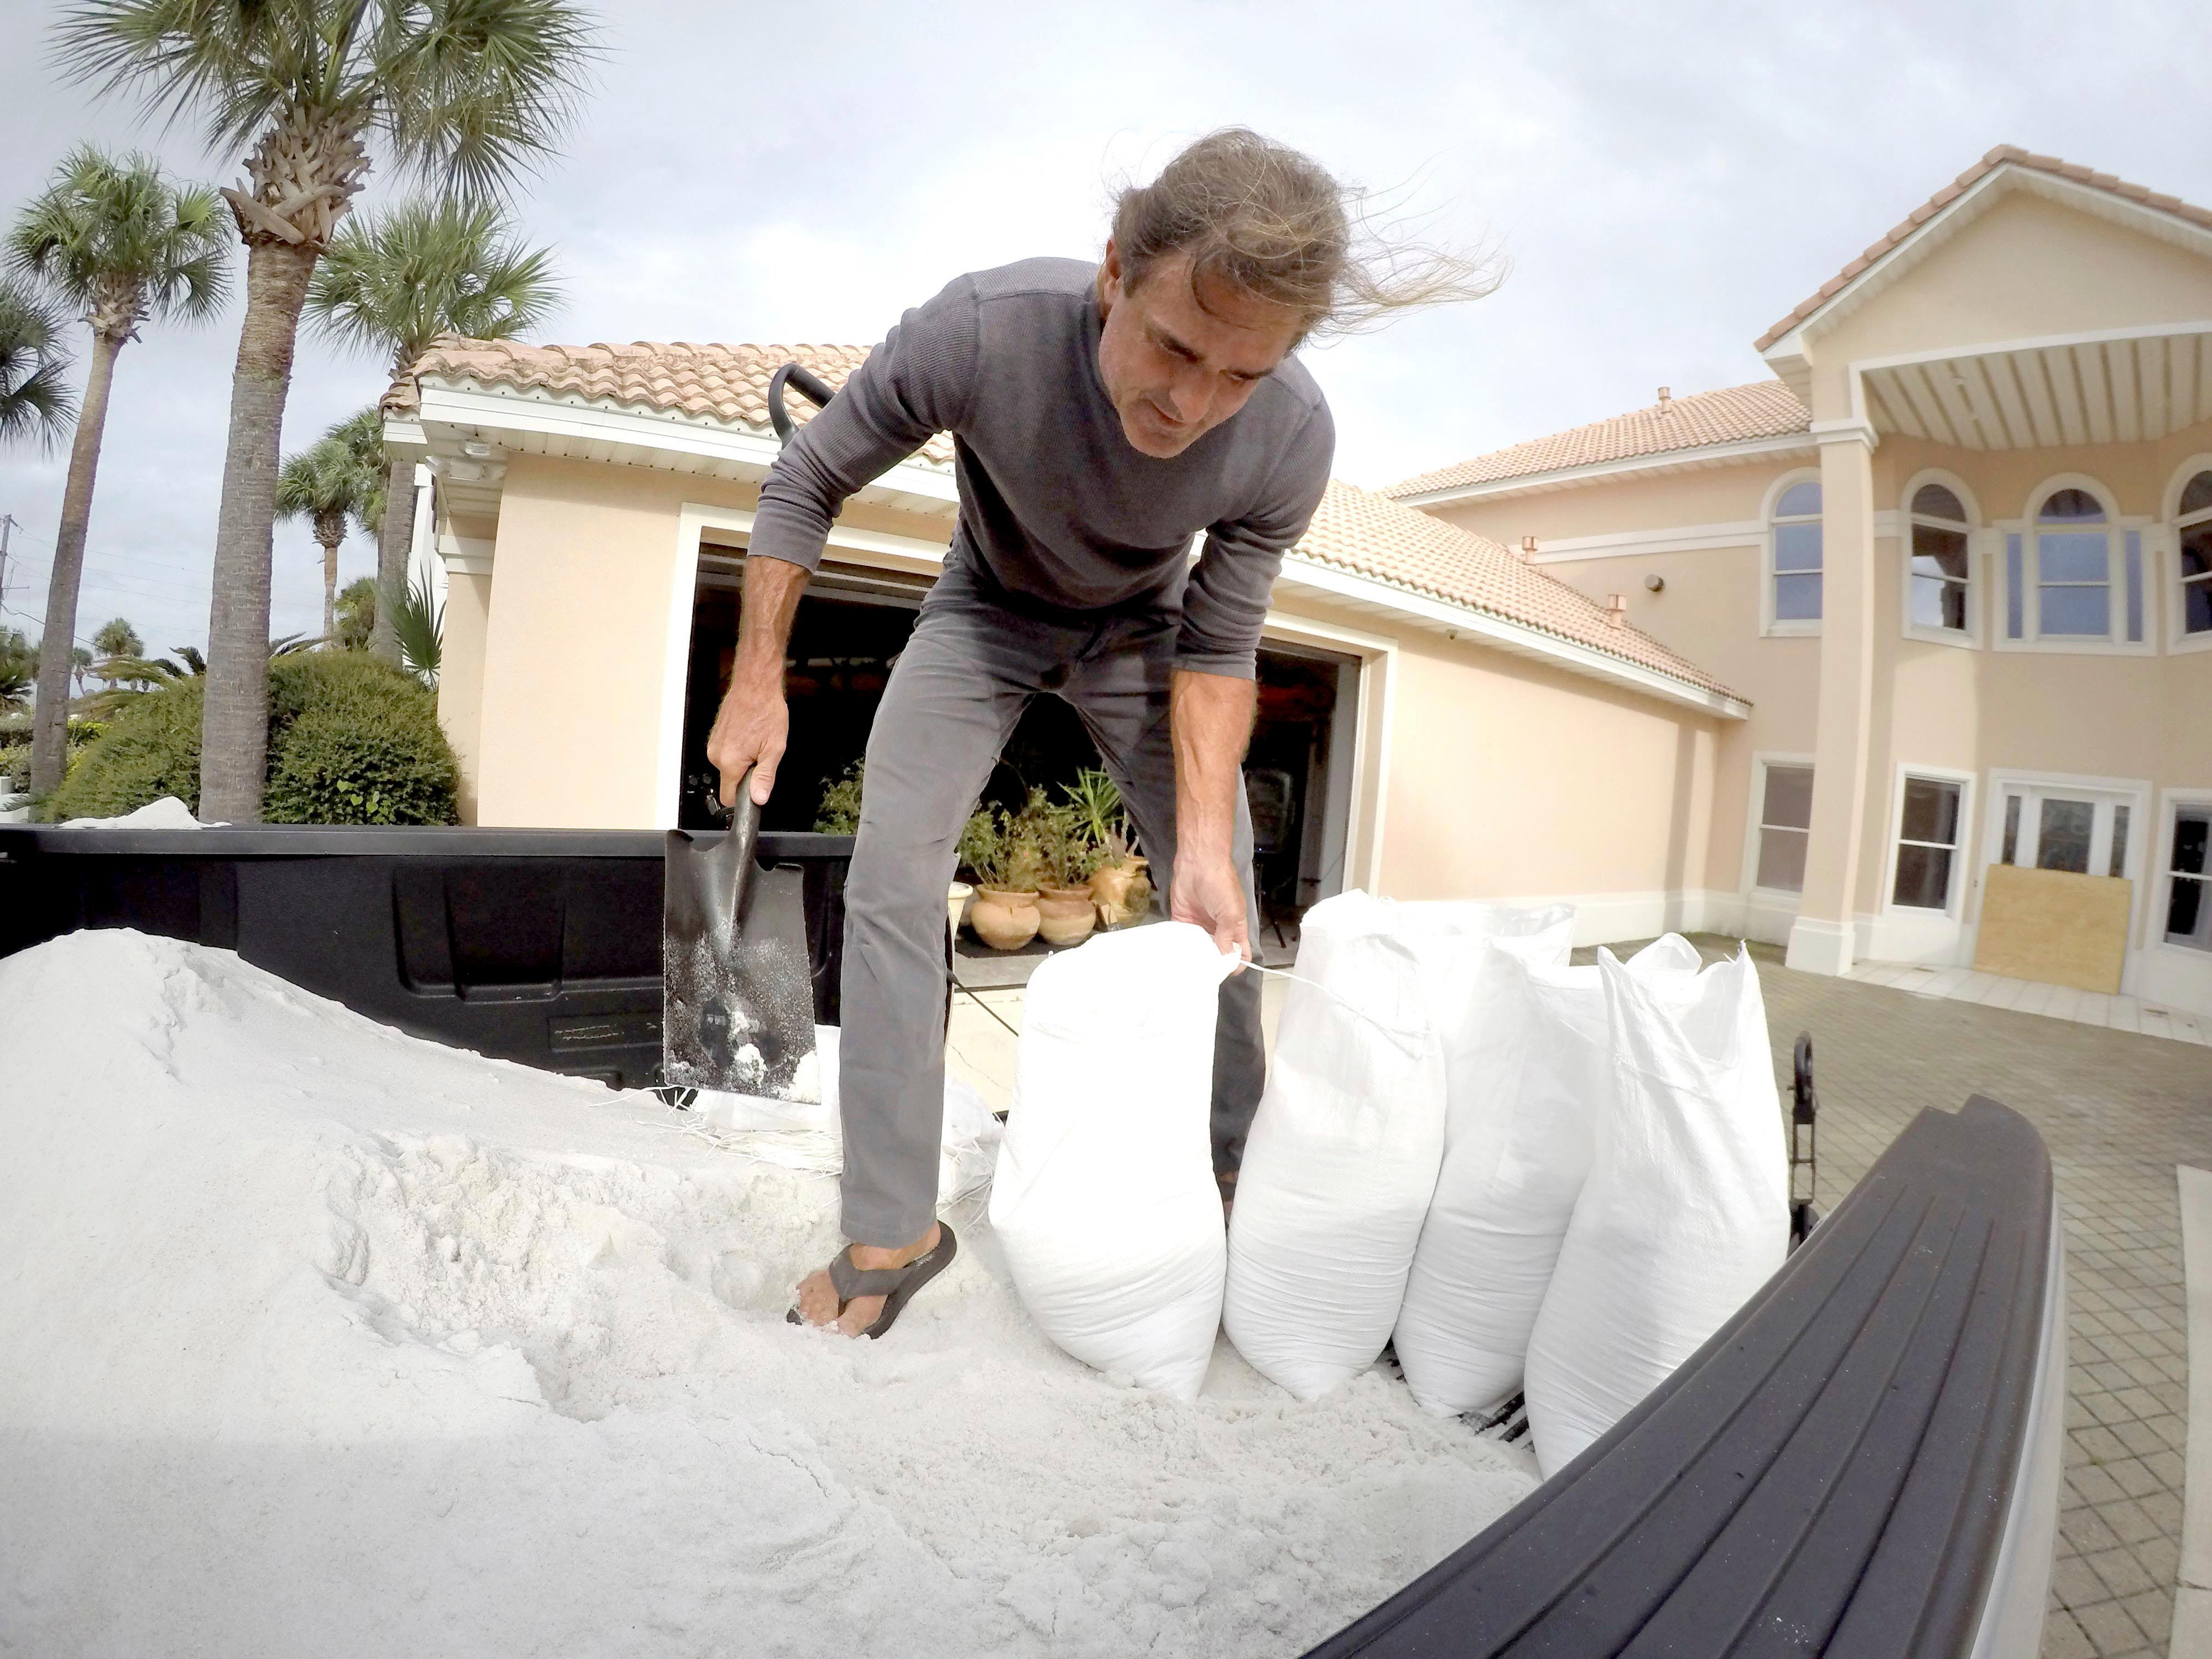 Rick Johnson fills sand bags on Tuesday, Oct. 9, 2018 at his Okaloosa Island home in Fort Walton Beach, Fla.,  in preparation for Hurricane Michael.